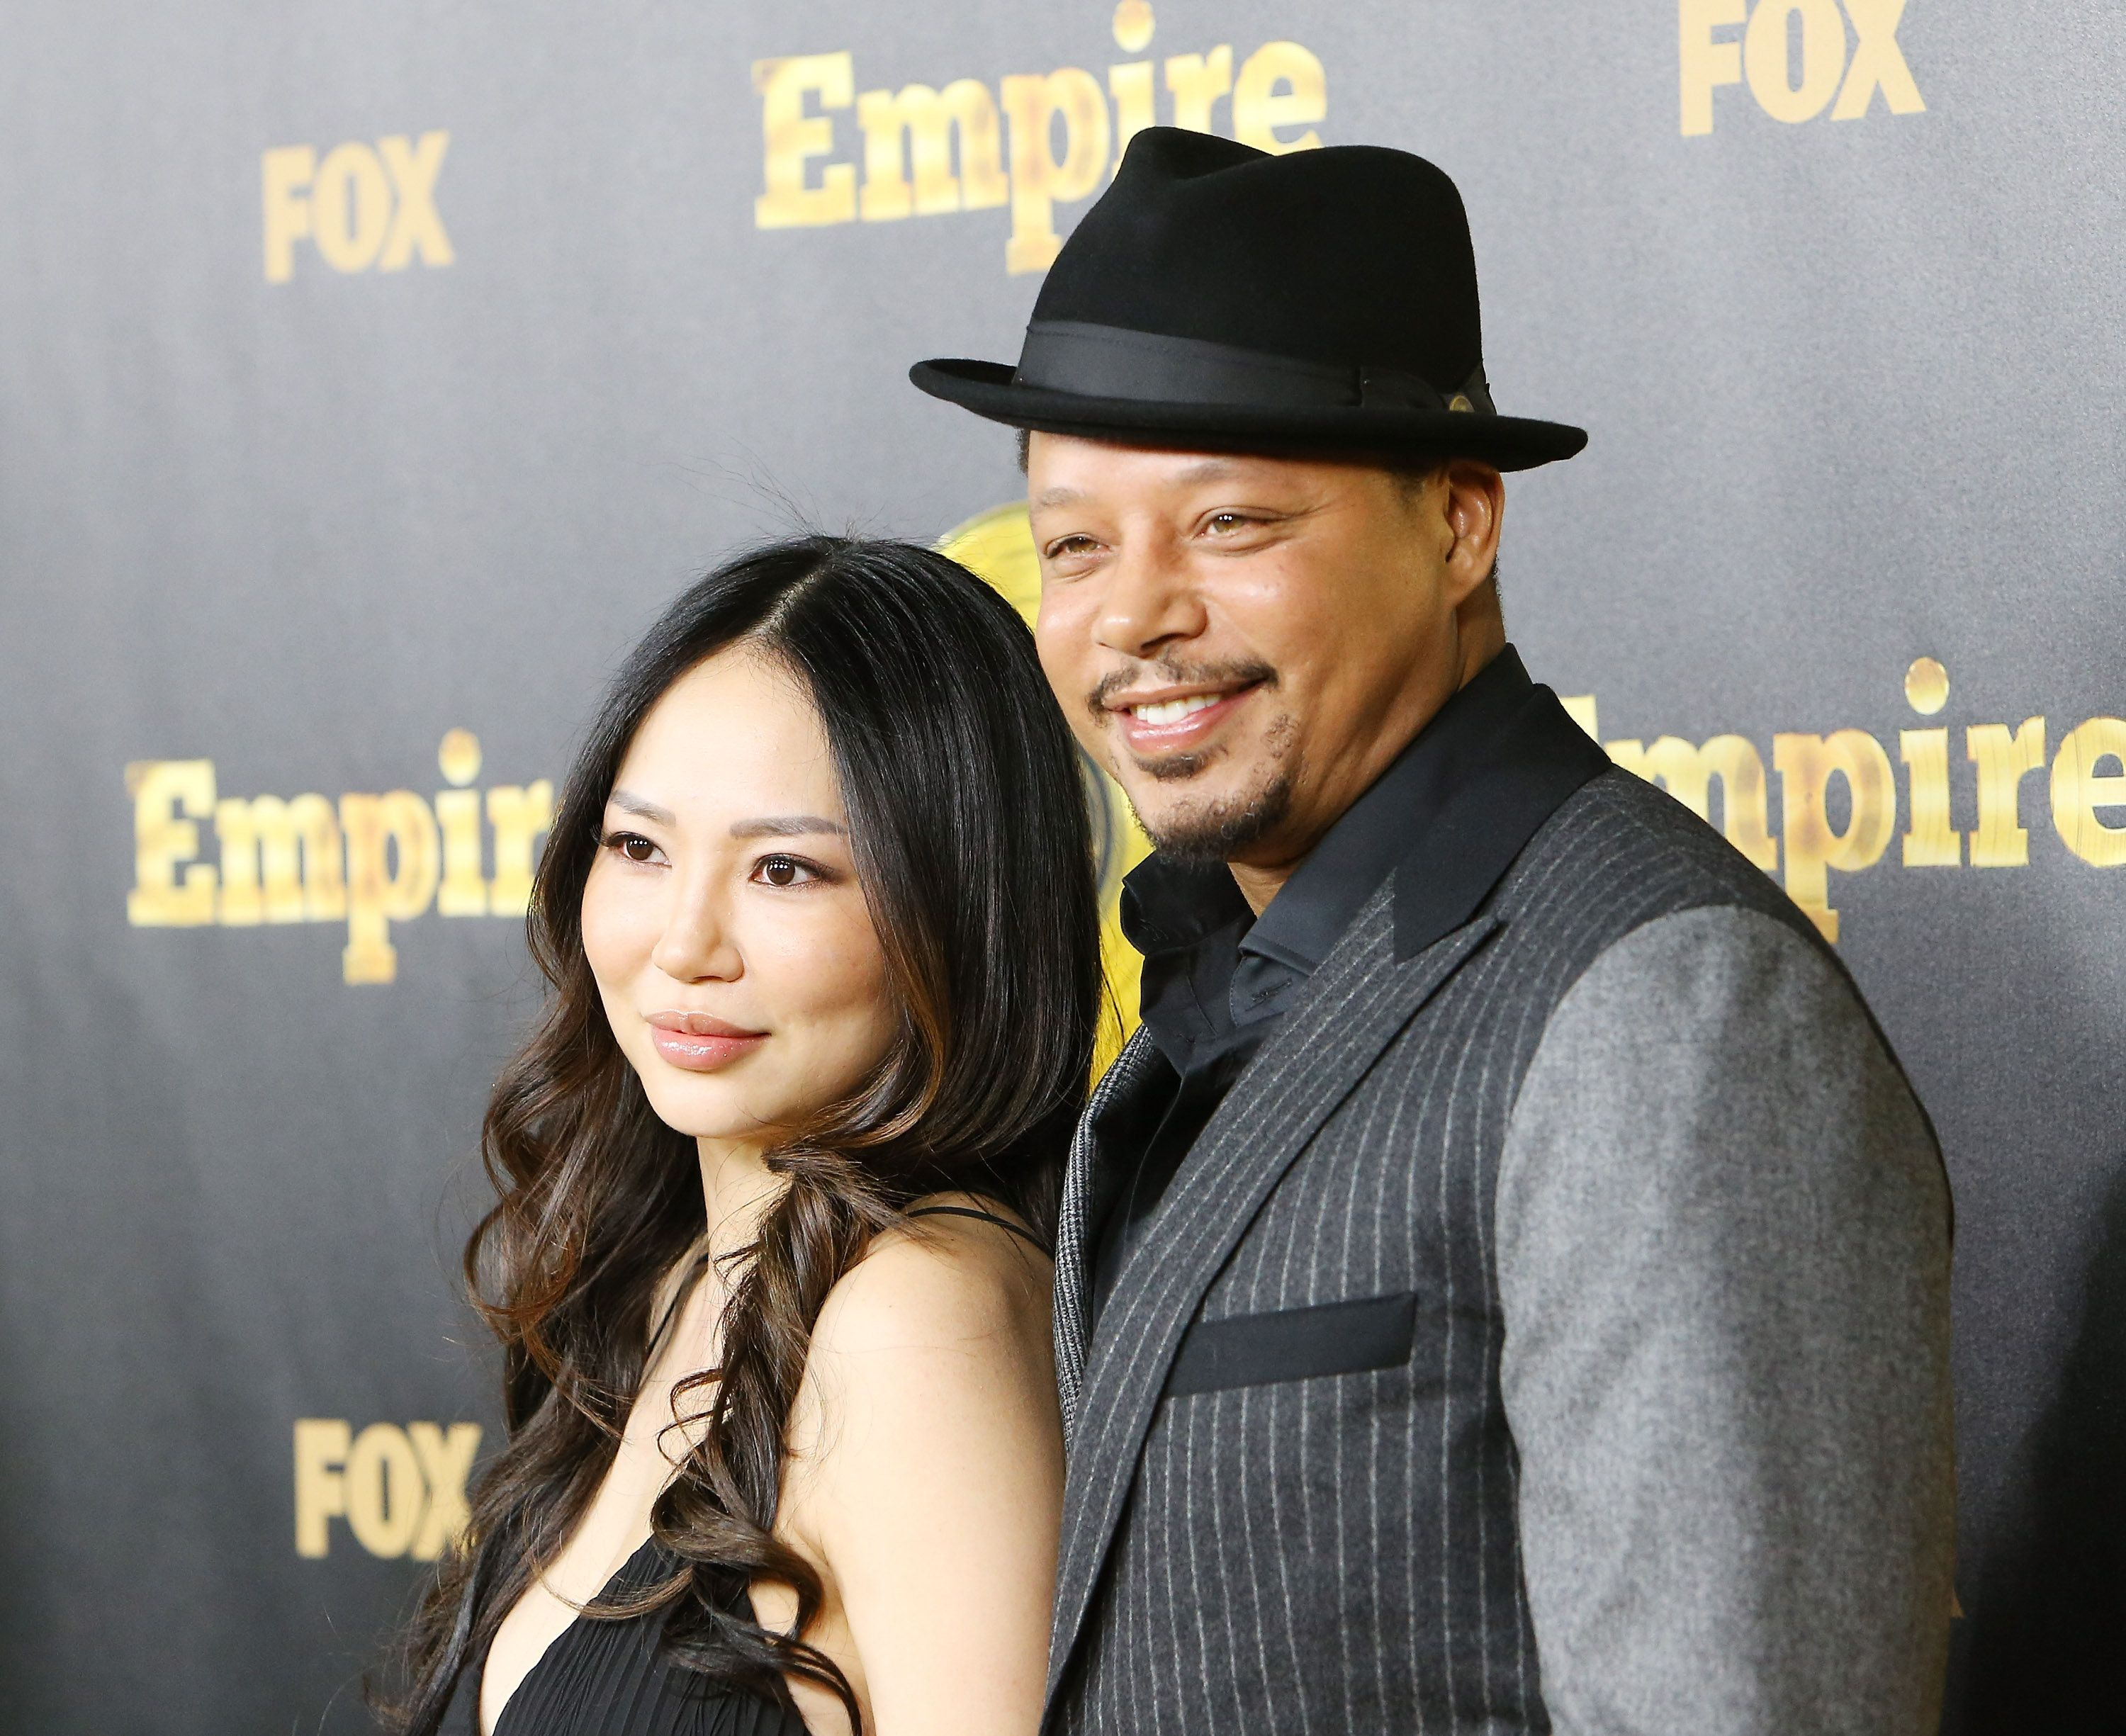 HOLLYWOOD, CA - JANUARY 06:  Terrence Howard and his wife, Miranda Howard arrive at the Los Angeles premiere of 'Empire' held at ArcLight Cinemas Cinerama Dome on January 6, 2015 in Hollywood, California.  (Photo by Michael Tran/FilmMagic)